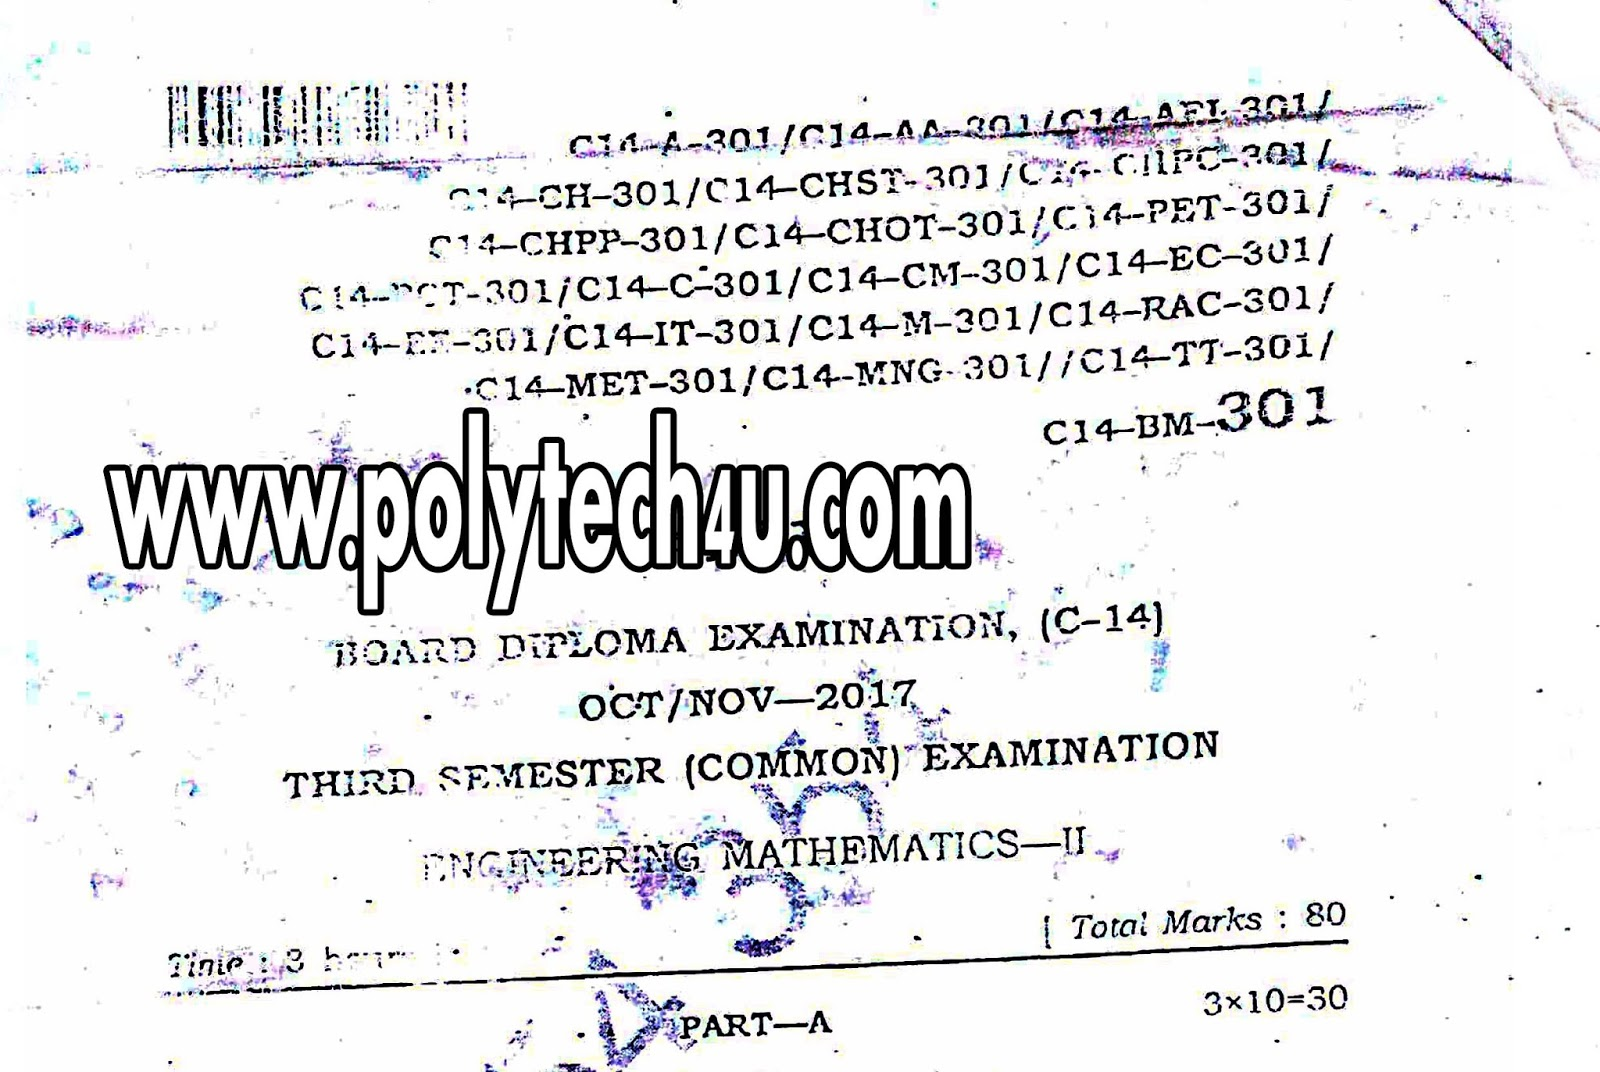 Maths 2 sbtetap c 14 dce old question paper oct nov 2017 pdf 301 engineering mathematics 2 malvernweather Image collections